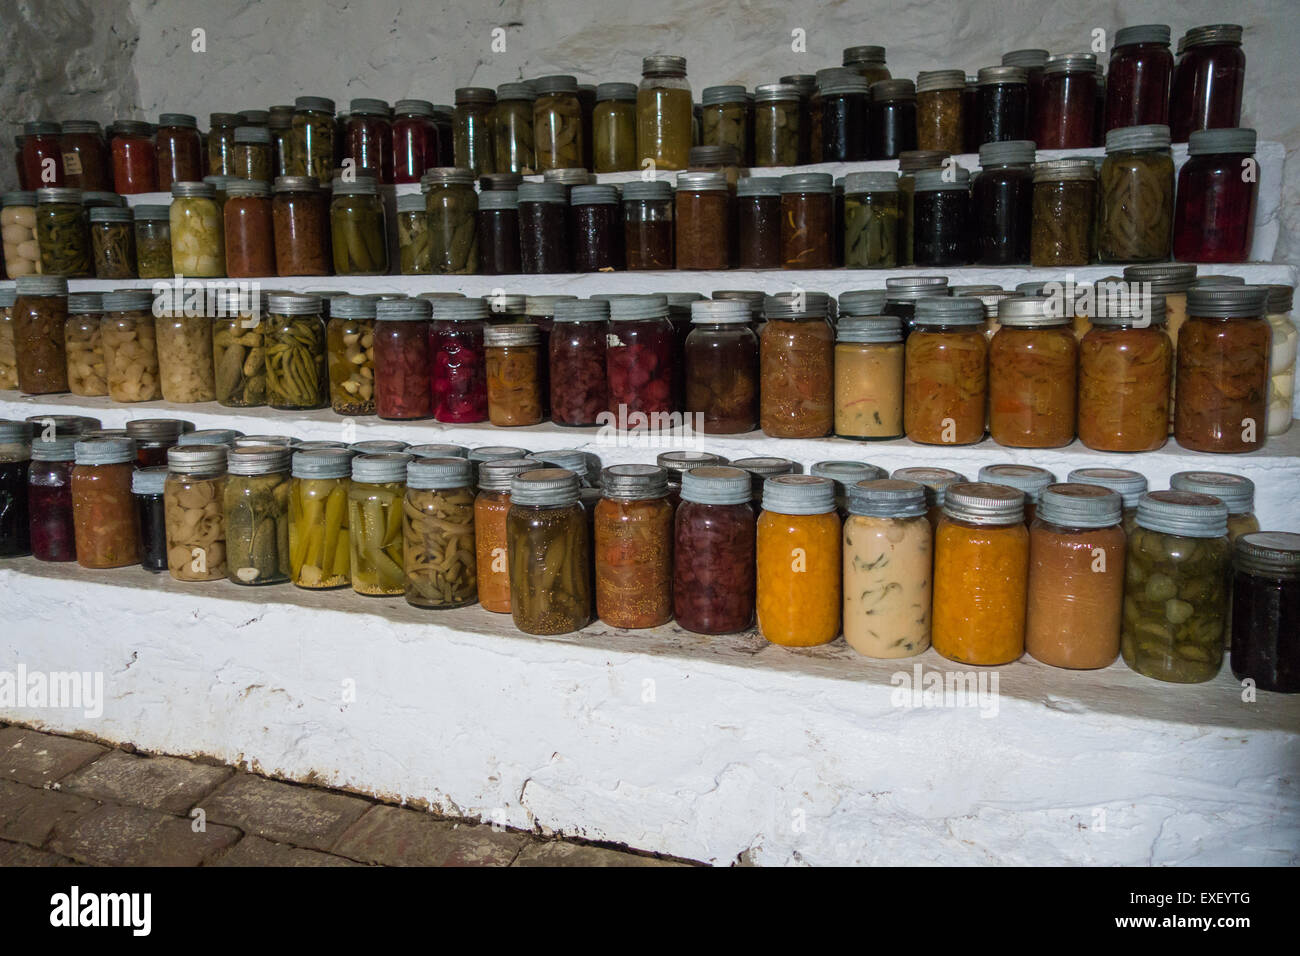 basement food glass jar jars preserved preserving - Stock Image